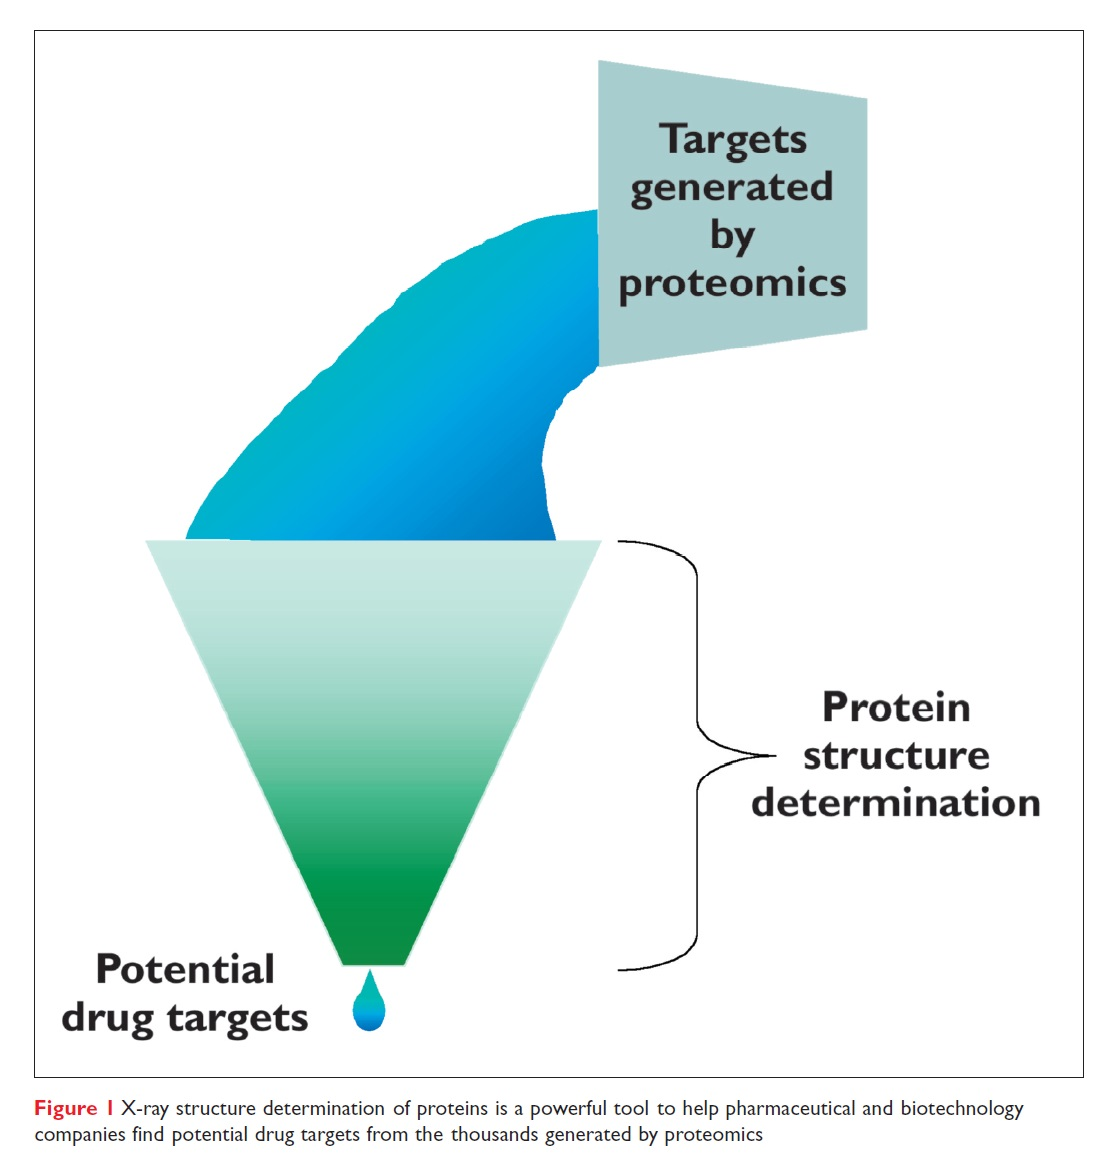 Figure 1 X-ray structure determination of proteins is a powerful tool to help pharmaceutical and biotech companies